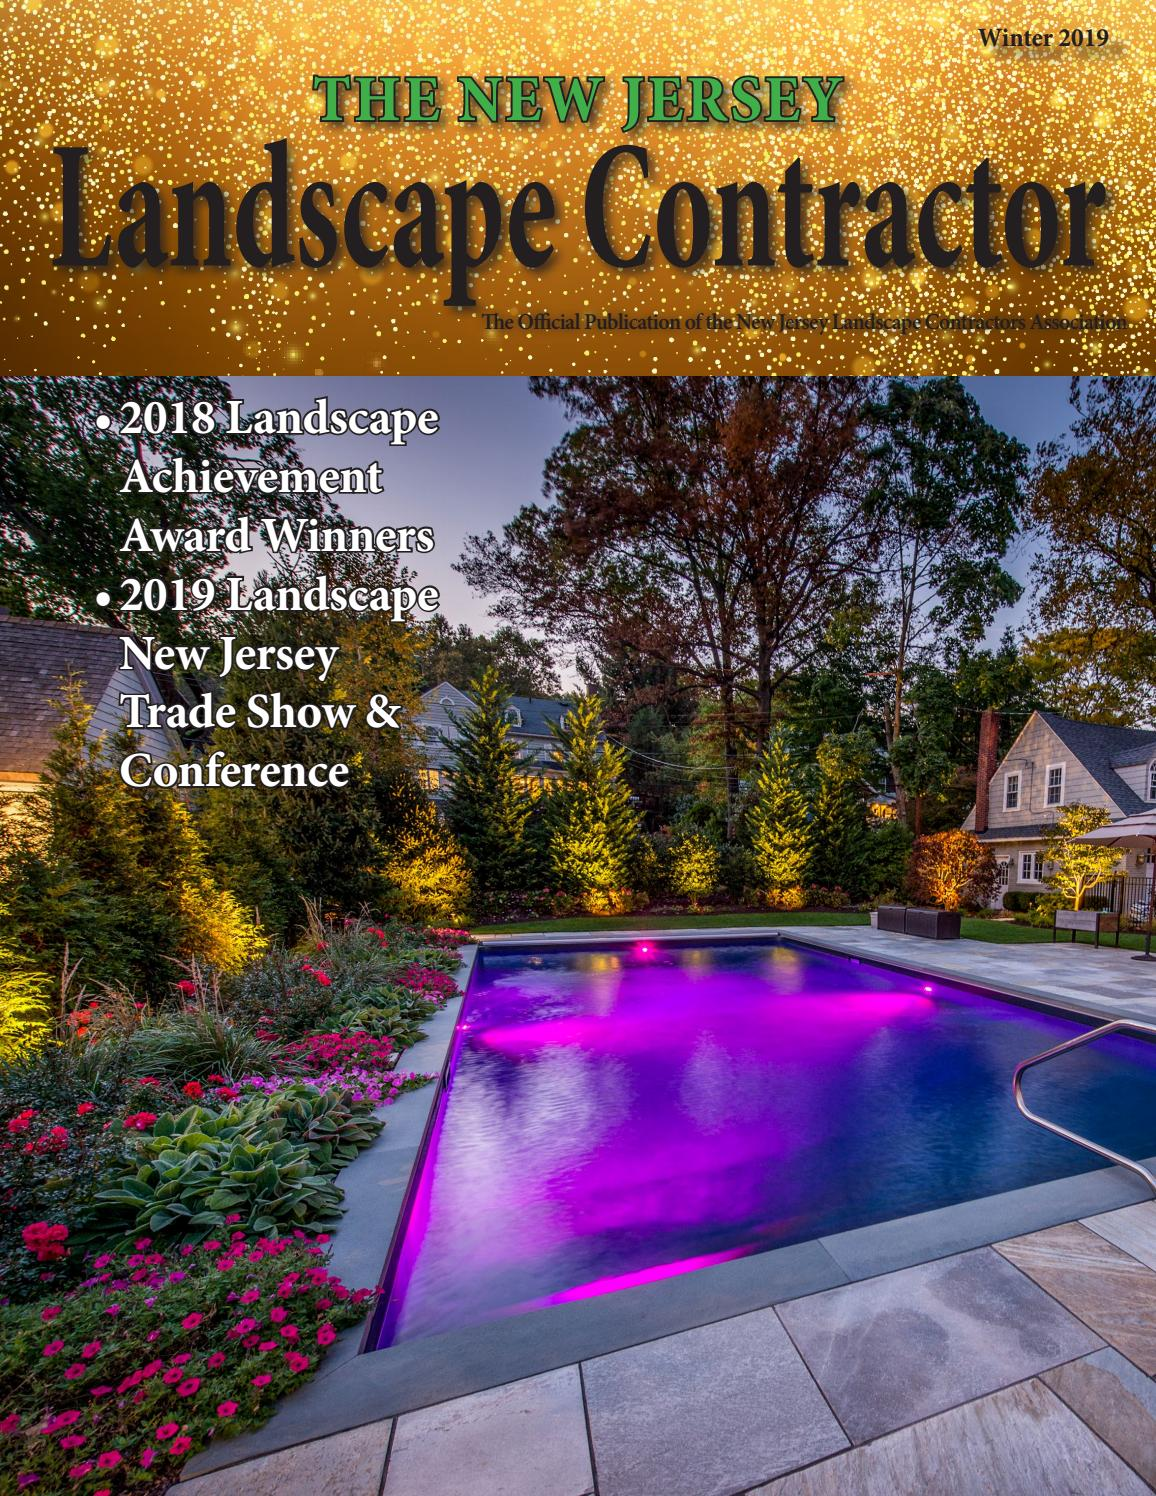 The New Jersey Landscape Contractor